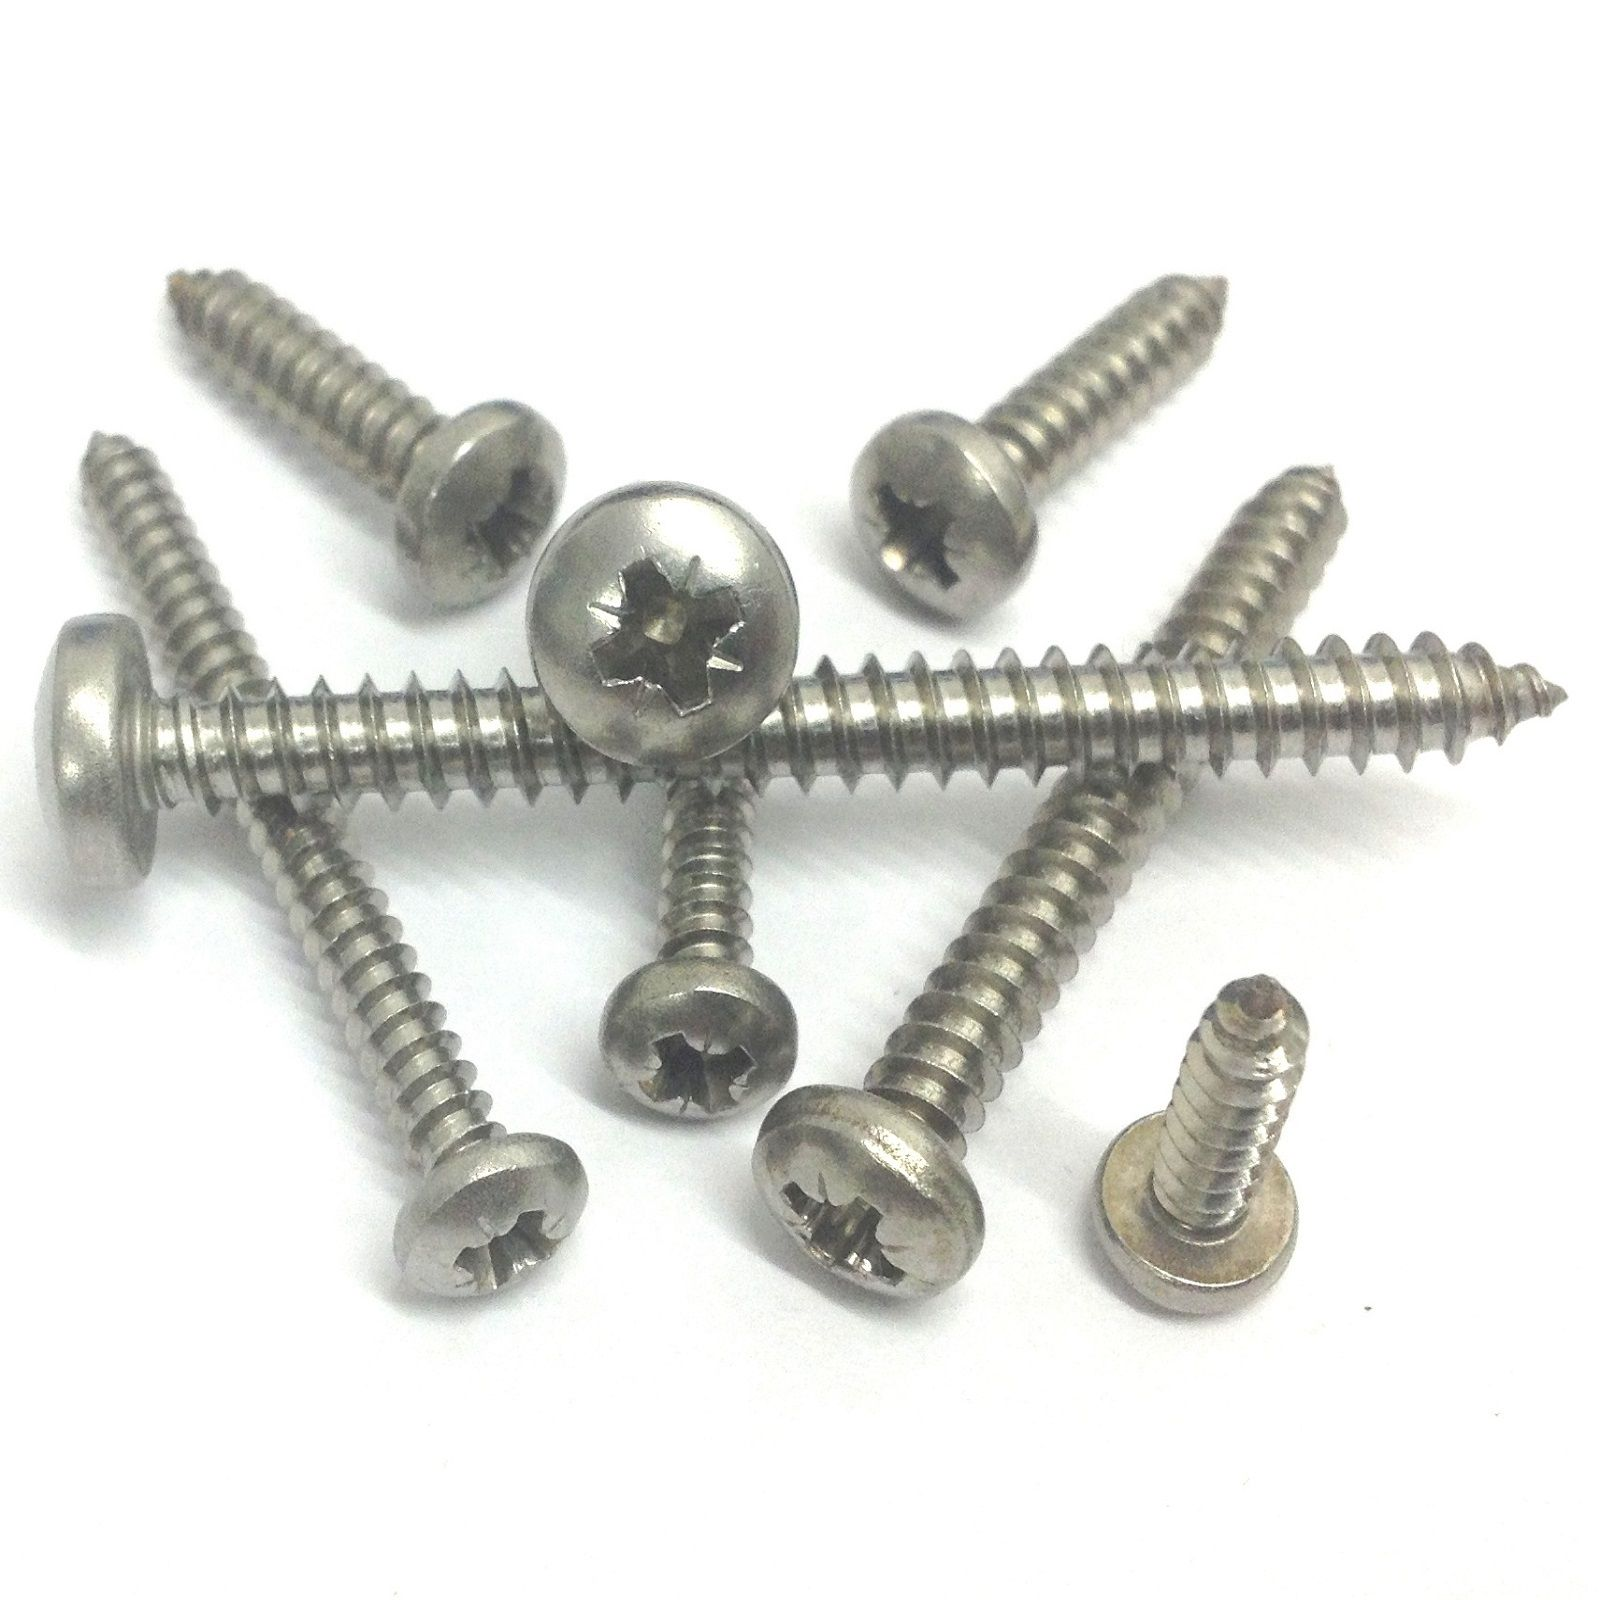 no 8 pozidriv pan head self tapping screws a2 stainless. Black Bedroom Furniture Sets. Home Design Ideas